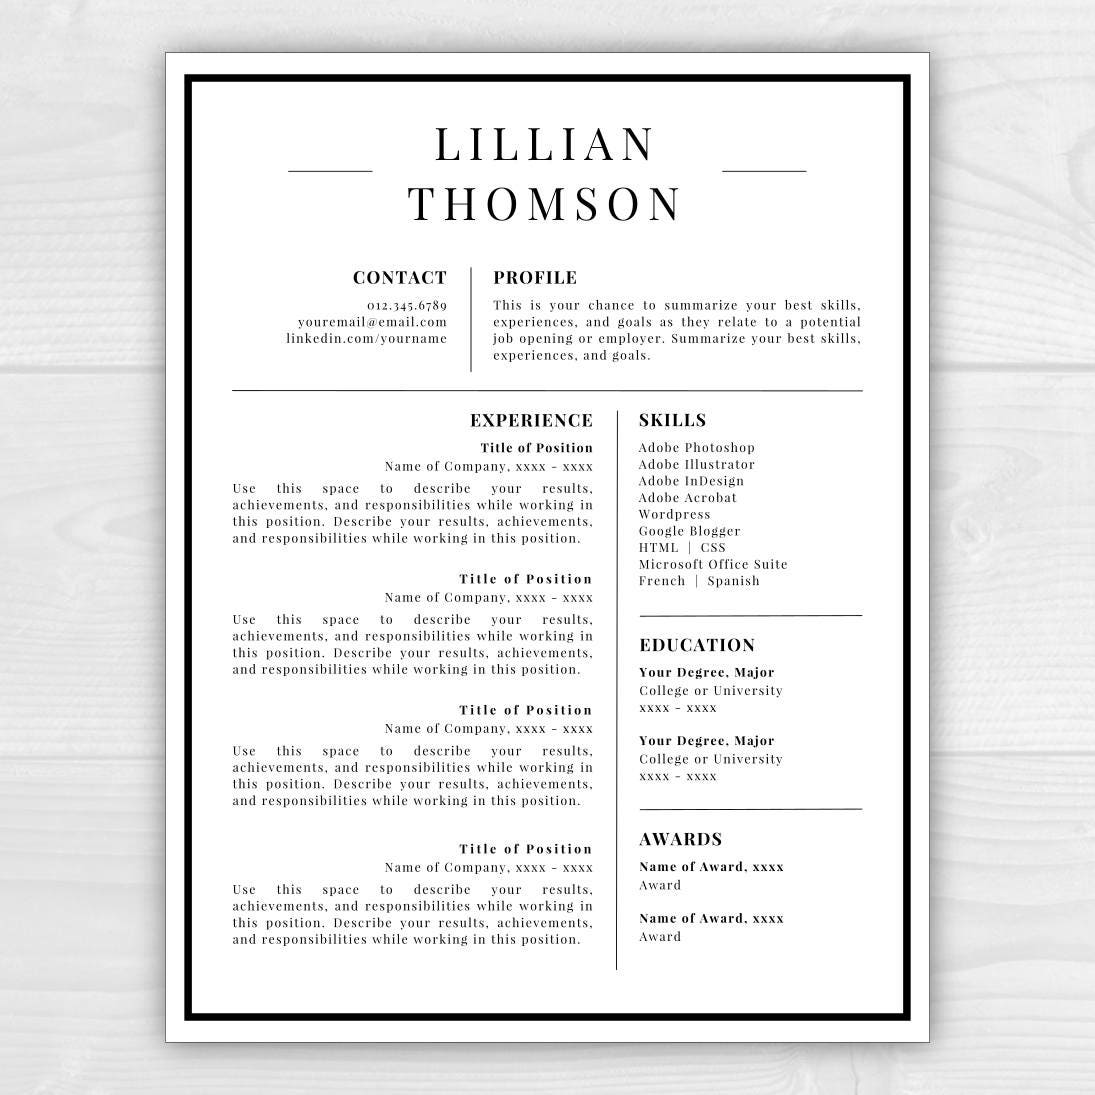 Professional Resume Template Microsoft Word: Professional Resume Template For Word & Pages CV Template